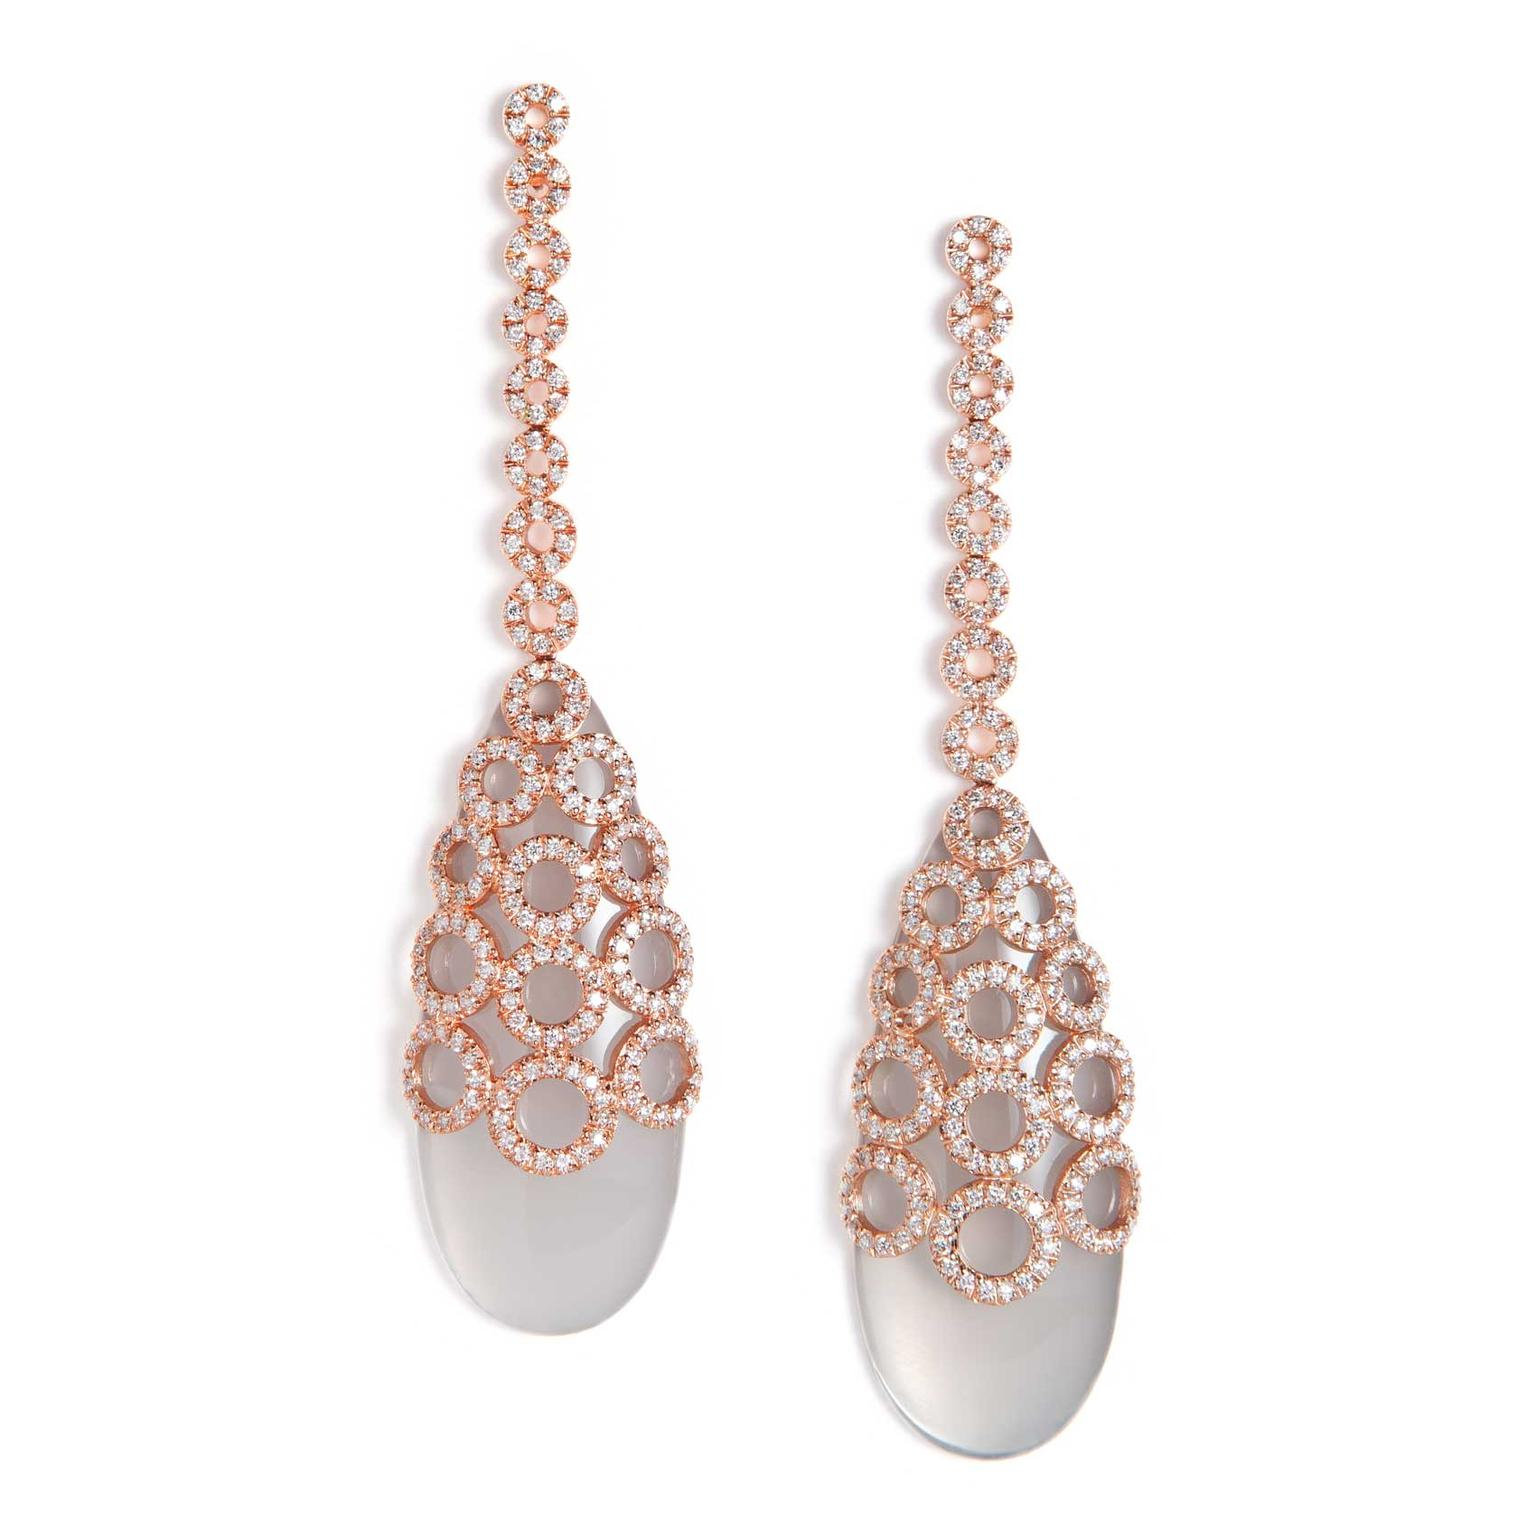 Carla Amorim Salt of Flower milky quartz earrings